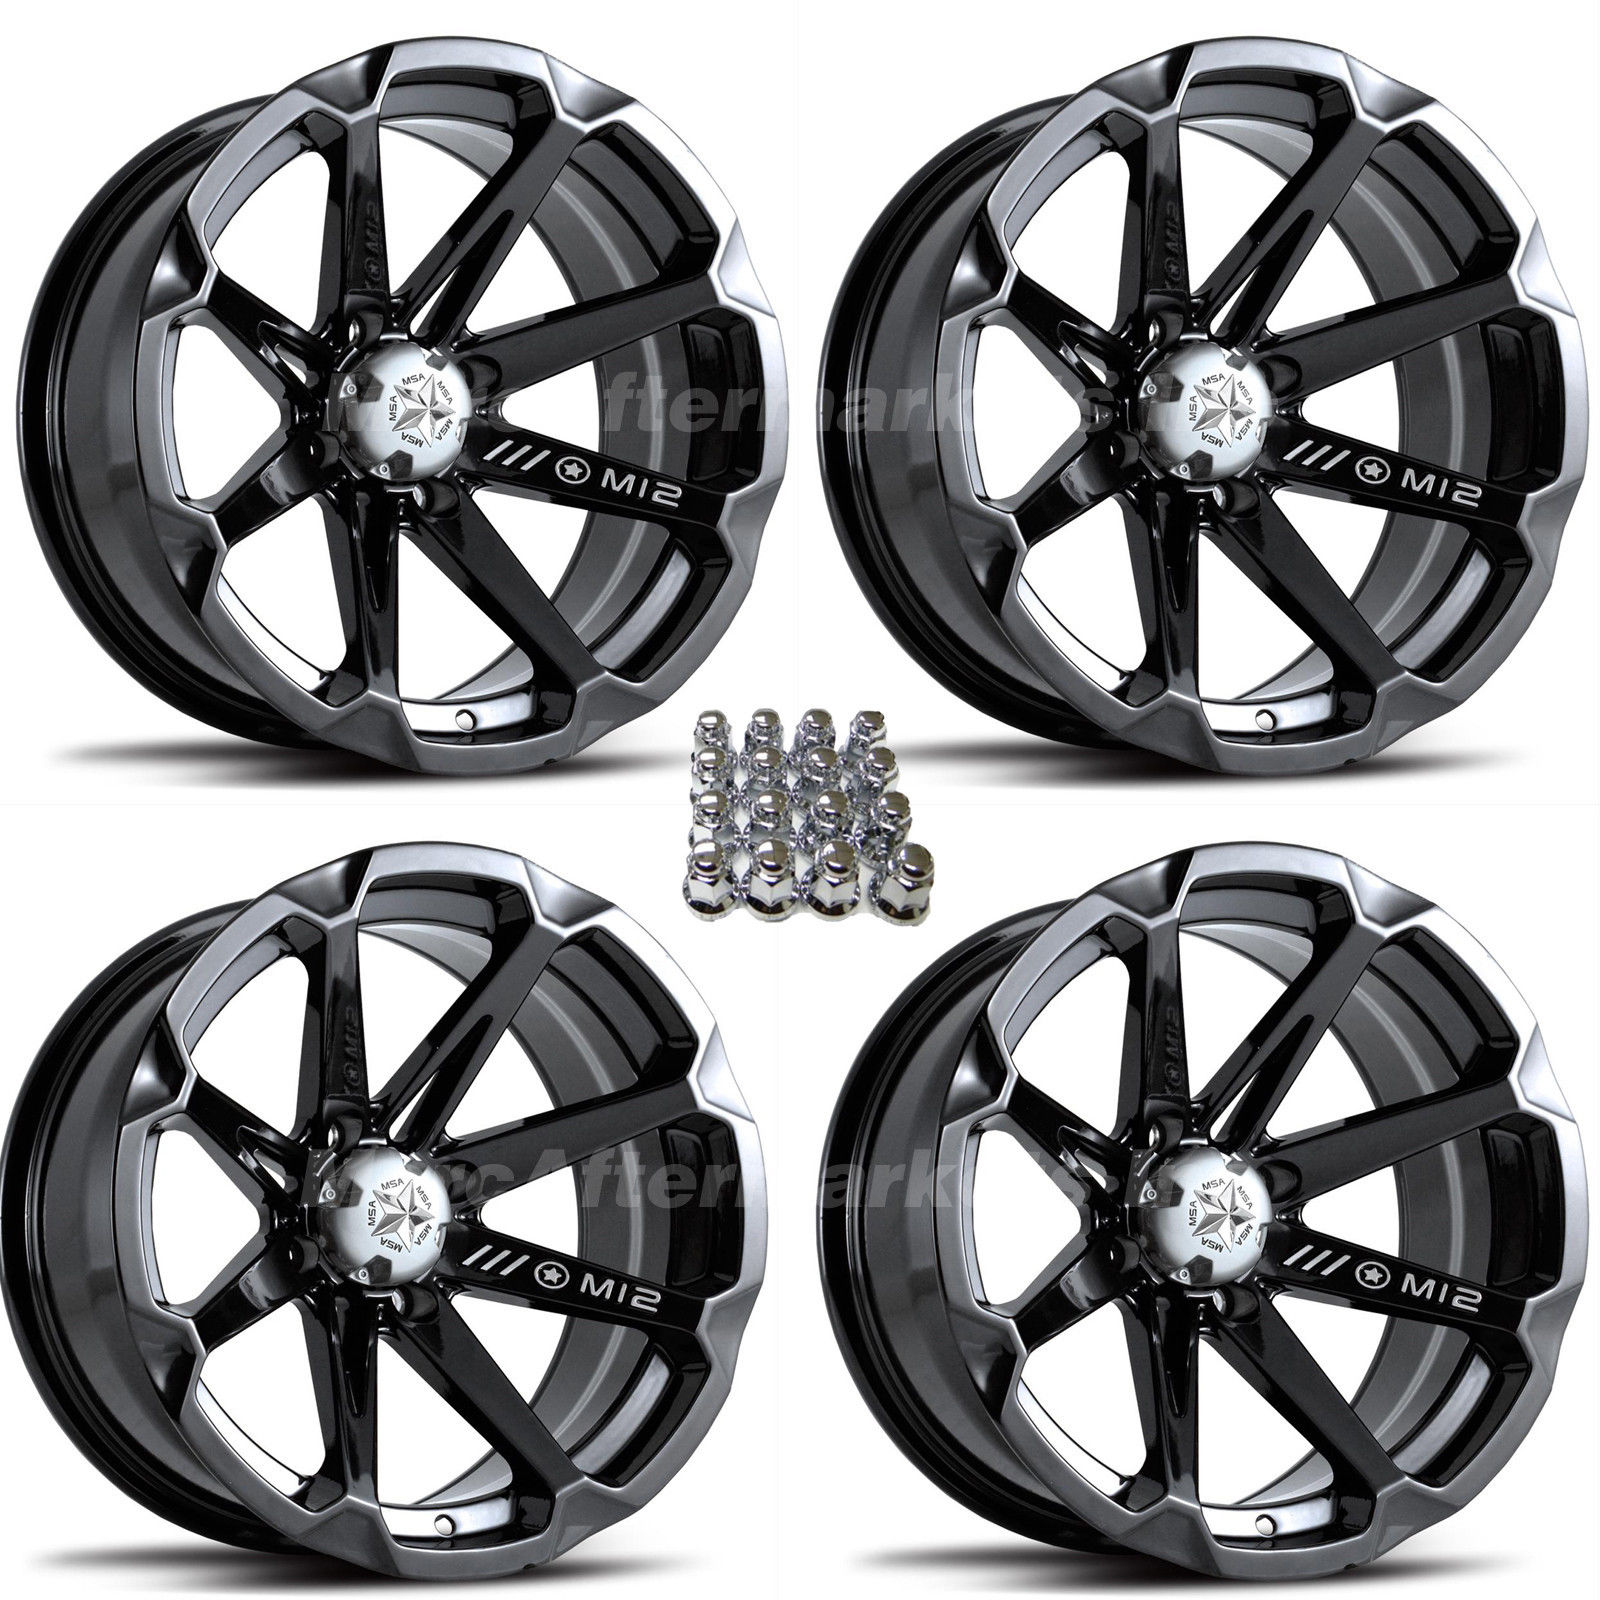 Msa m12 diesel 14 atv utv wheels for polaris rzr ebay msa m12 diesel 14 atv utv wheels for polaris rzr sciox Gallery